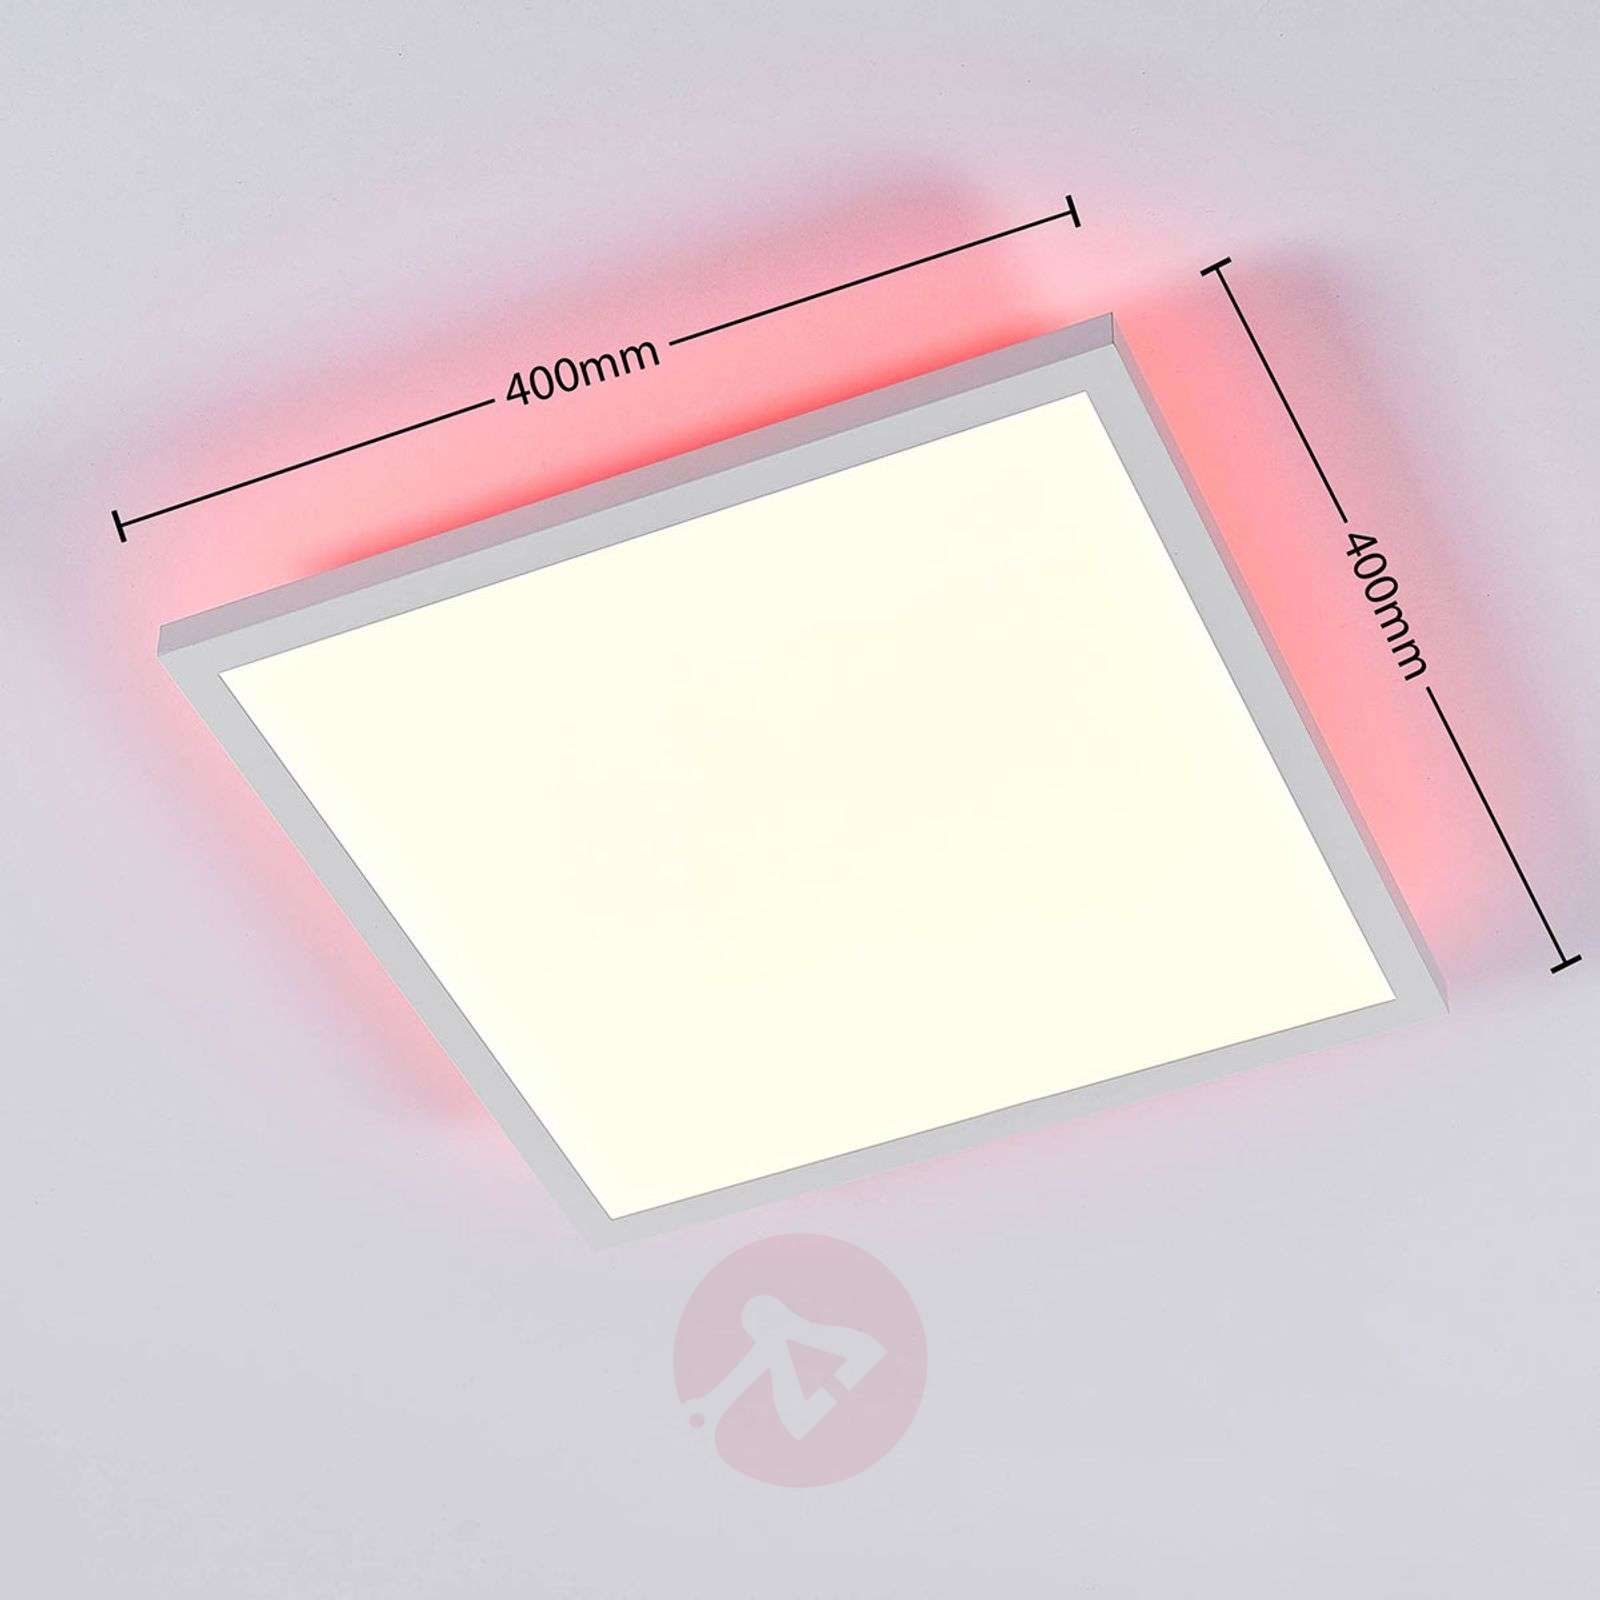 LED panel Brenda CCT with remote, 40 x 40 cm-9624204-02